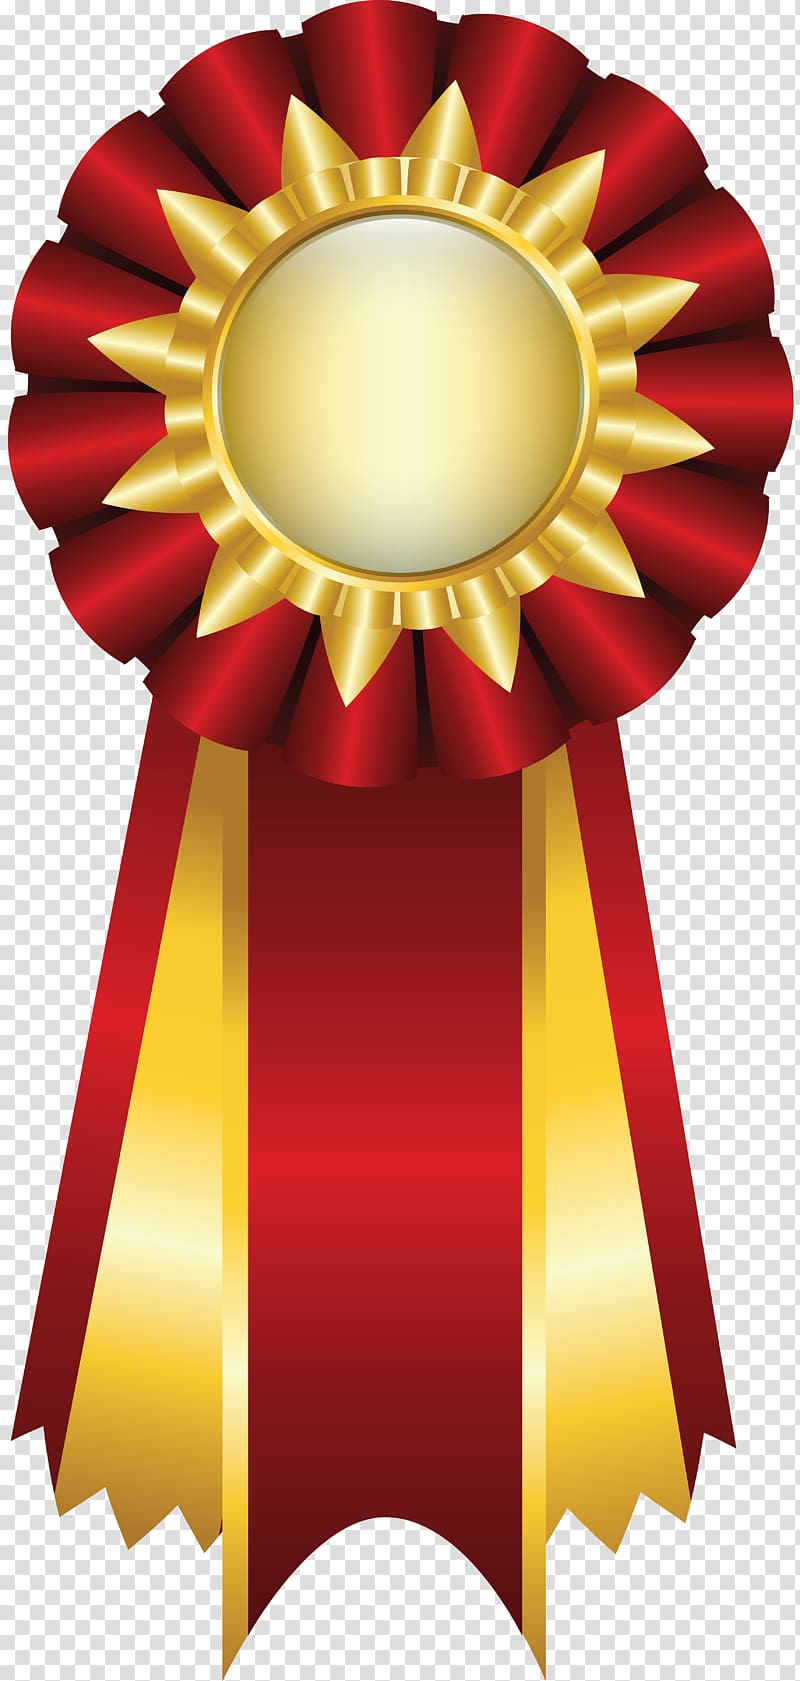 Ribbon Rosette , medal transparent background PNG clipart.